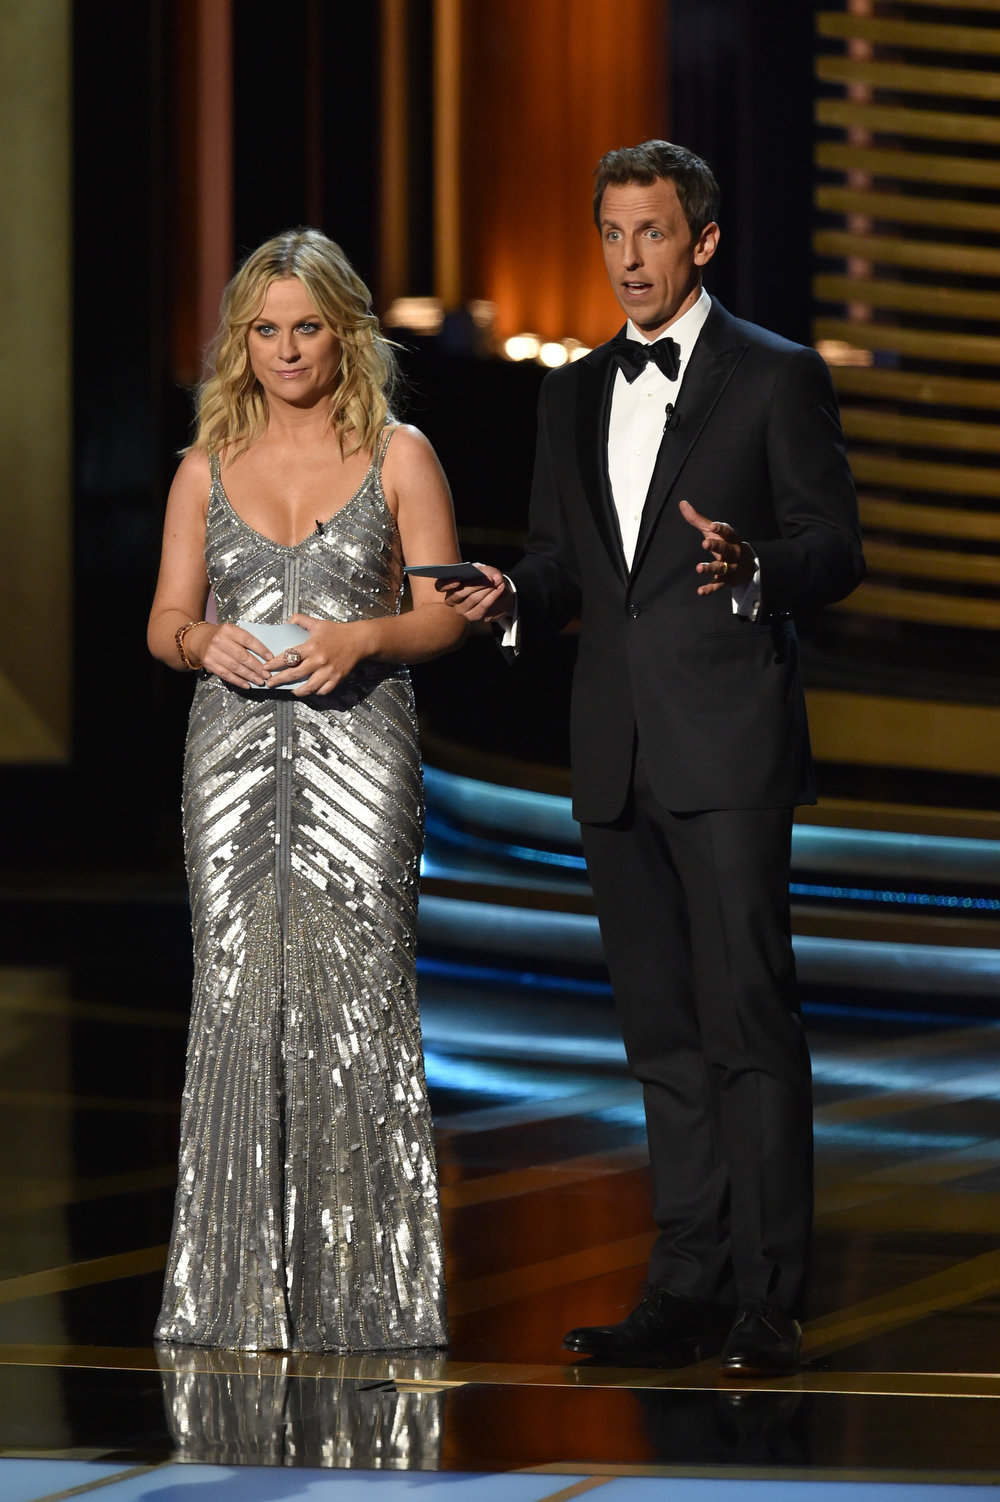 . Actress Amy Poehler (L) and host Seth Meyers speak onstage at the 66th Annual Primetime Emmy Awards held at Nokia Theatre L.A. Live on August 25, 2014 in Los Angeles, California.  (Photo by Kevin Winter/Getty Images)